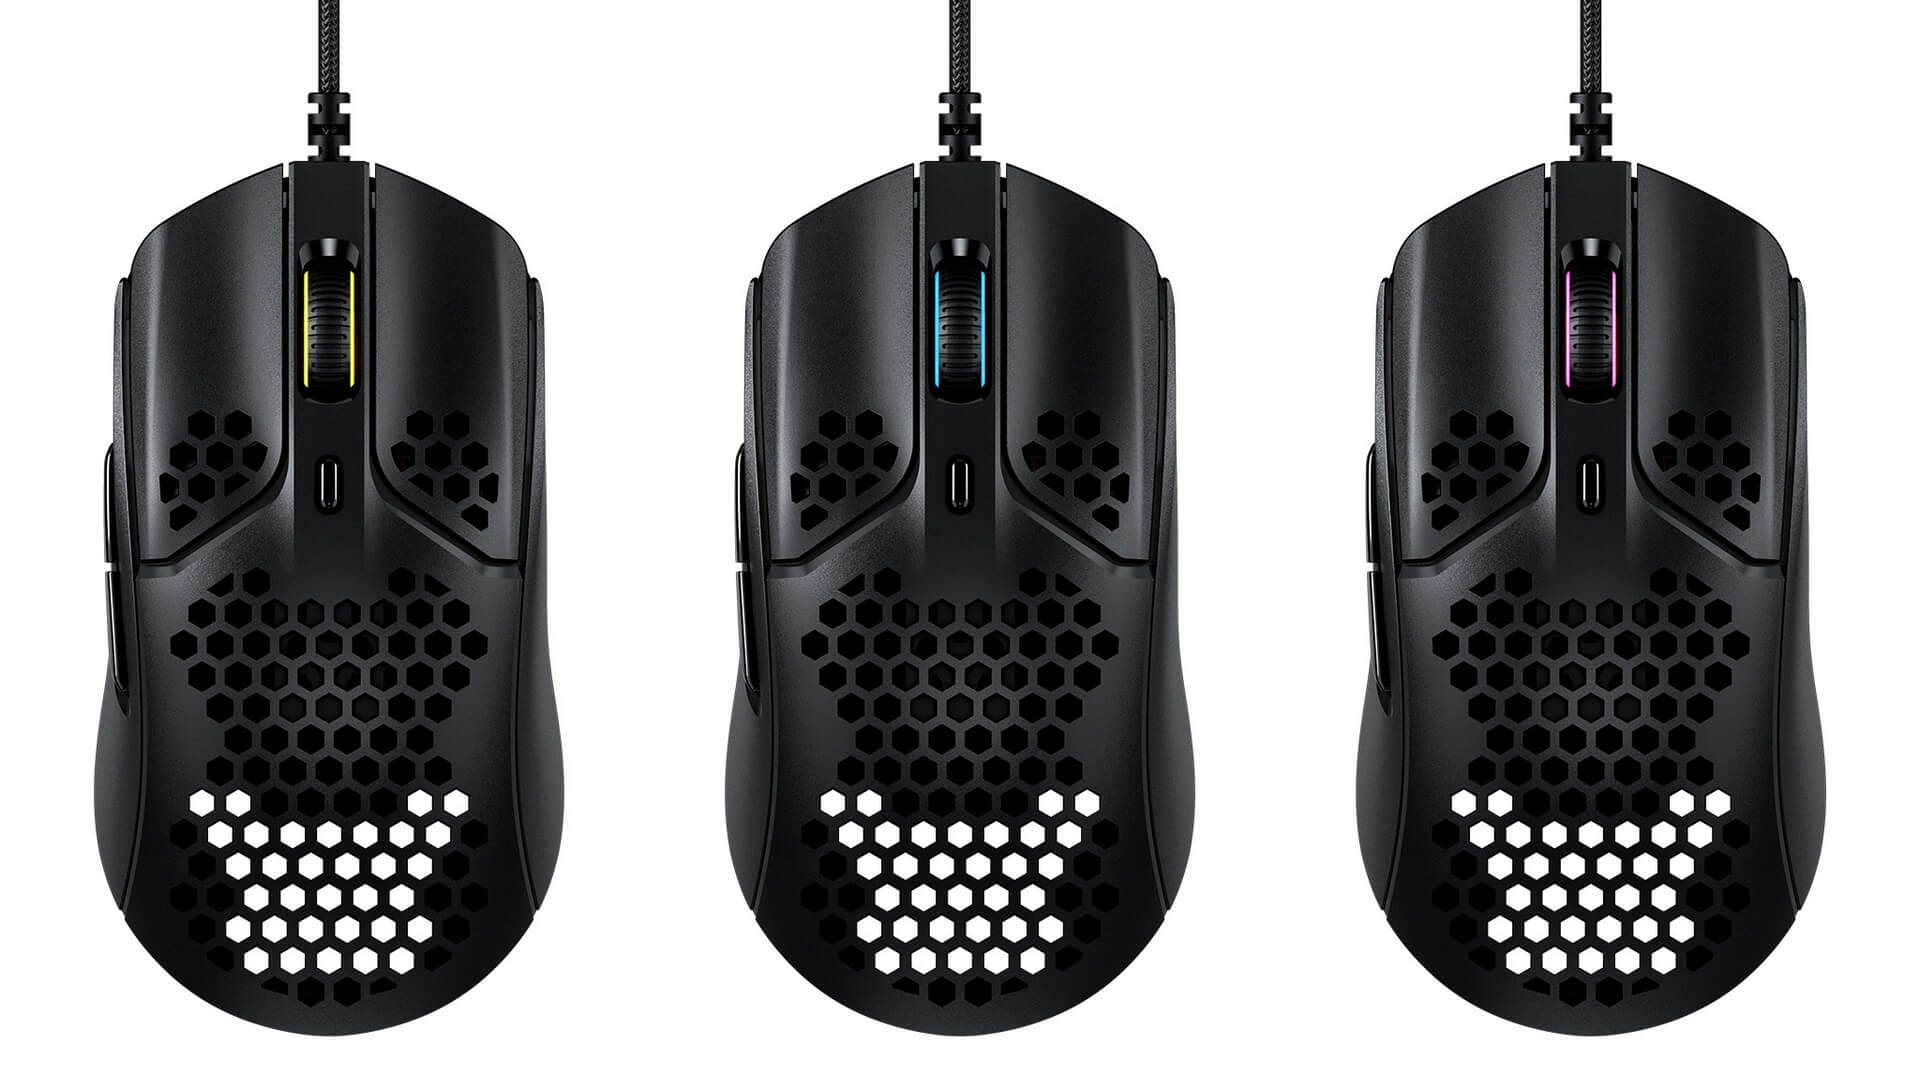 HyperX Pulsefire Haste Review: Light as a Feather!